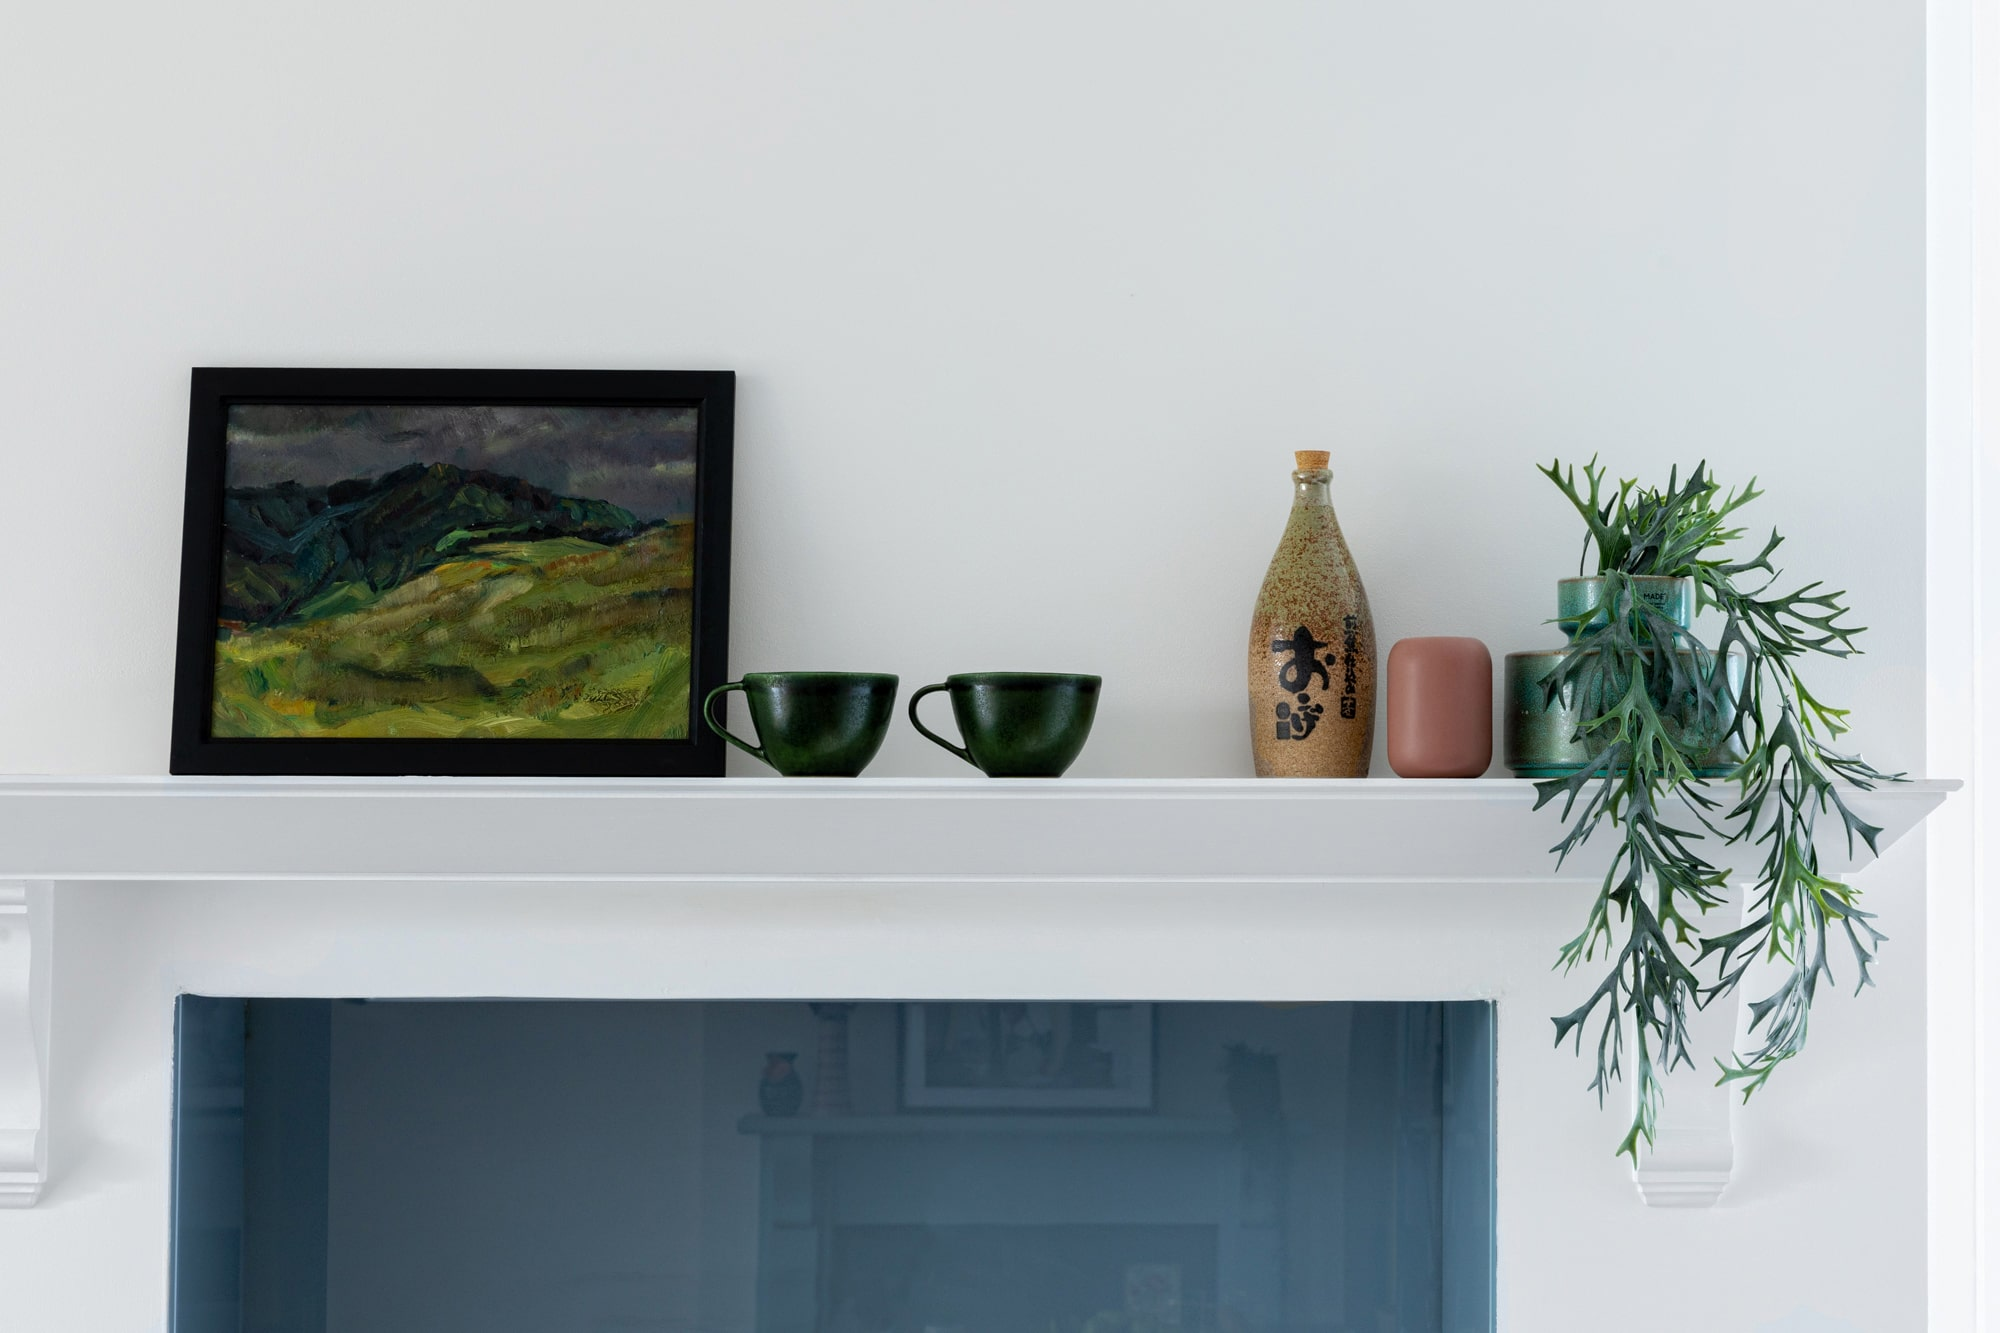 Interior detail photo: kitchen shelf with 2 dark green mugs, a painting, plant in  vase and other accessories